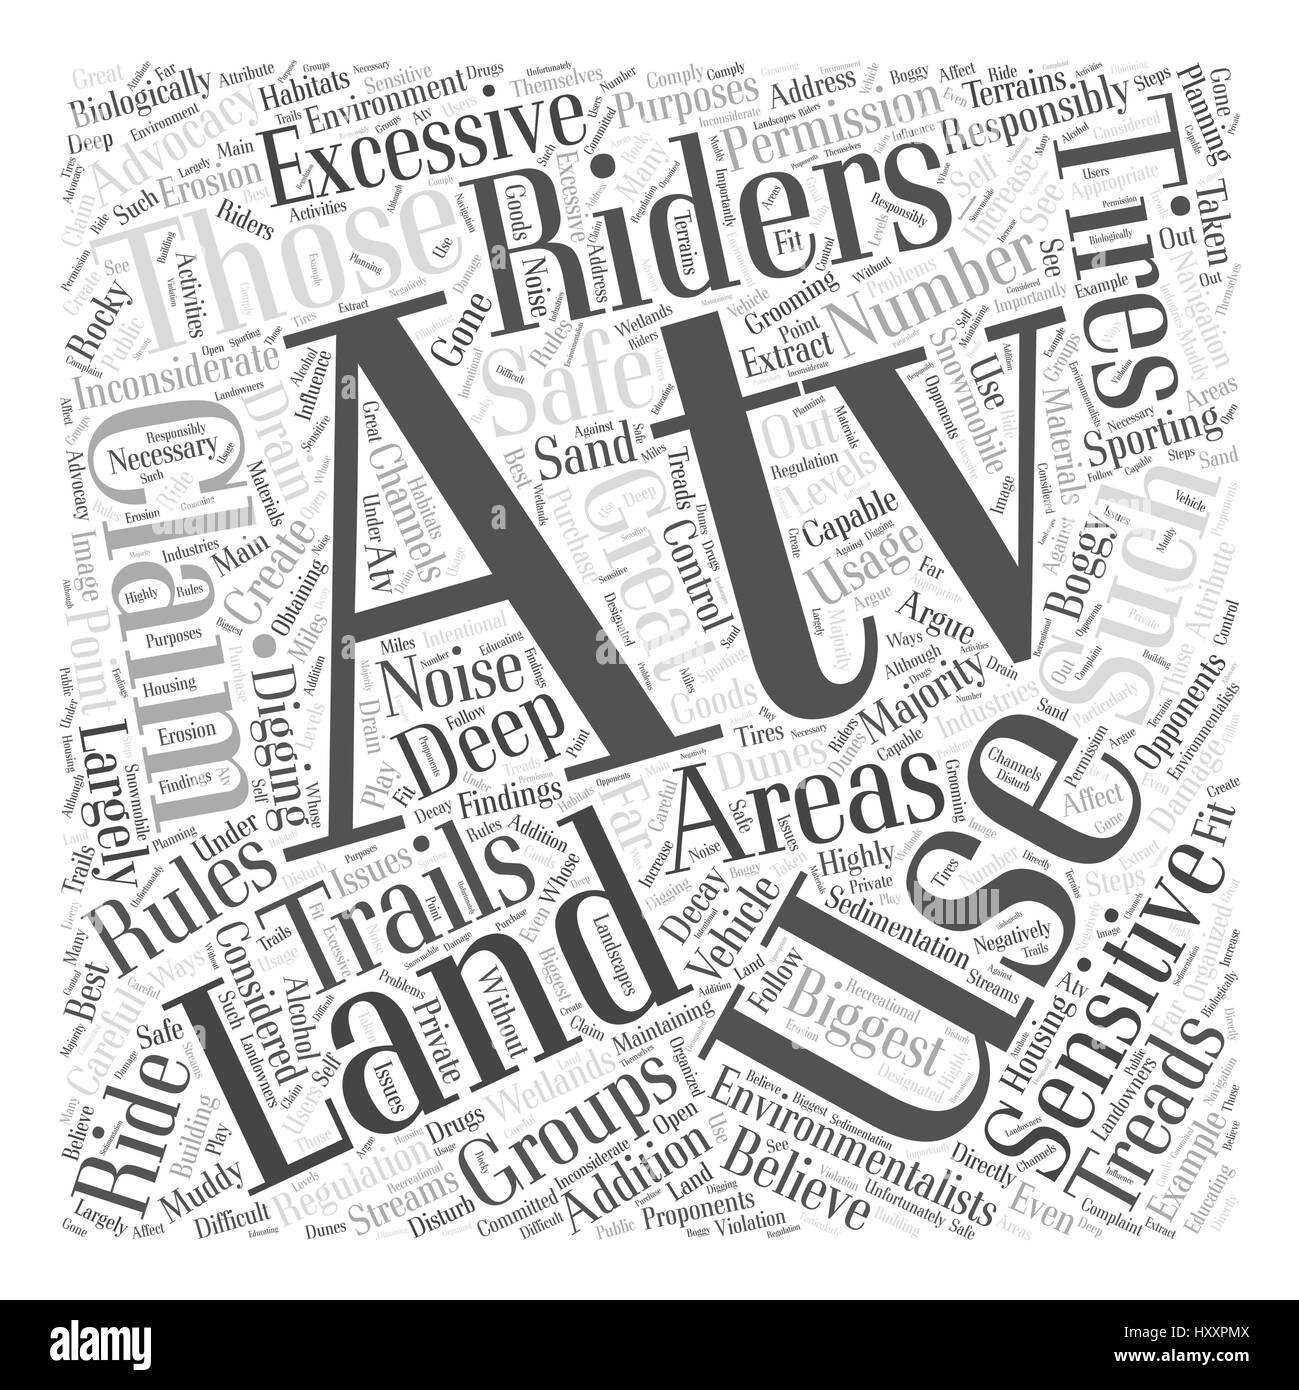 atvs and land usage Word Cloud Concept - Stock Image